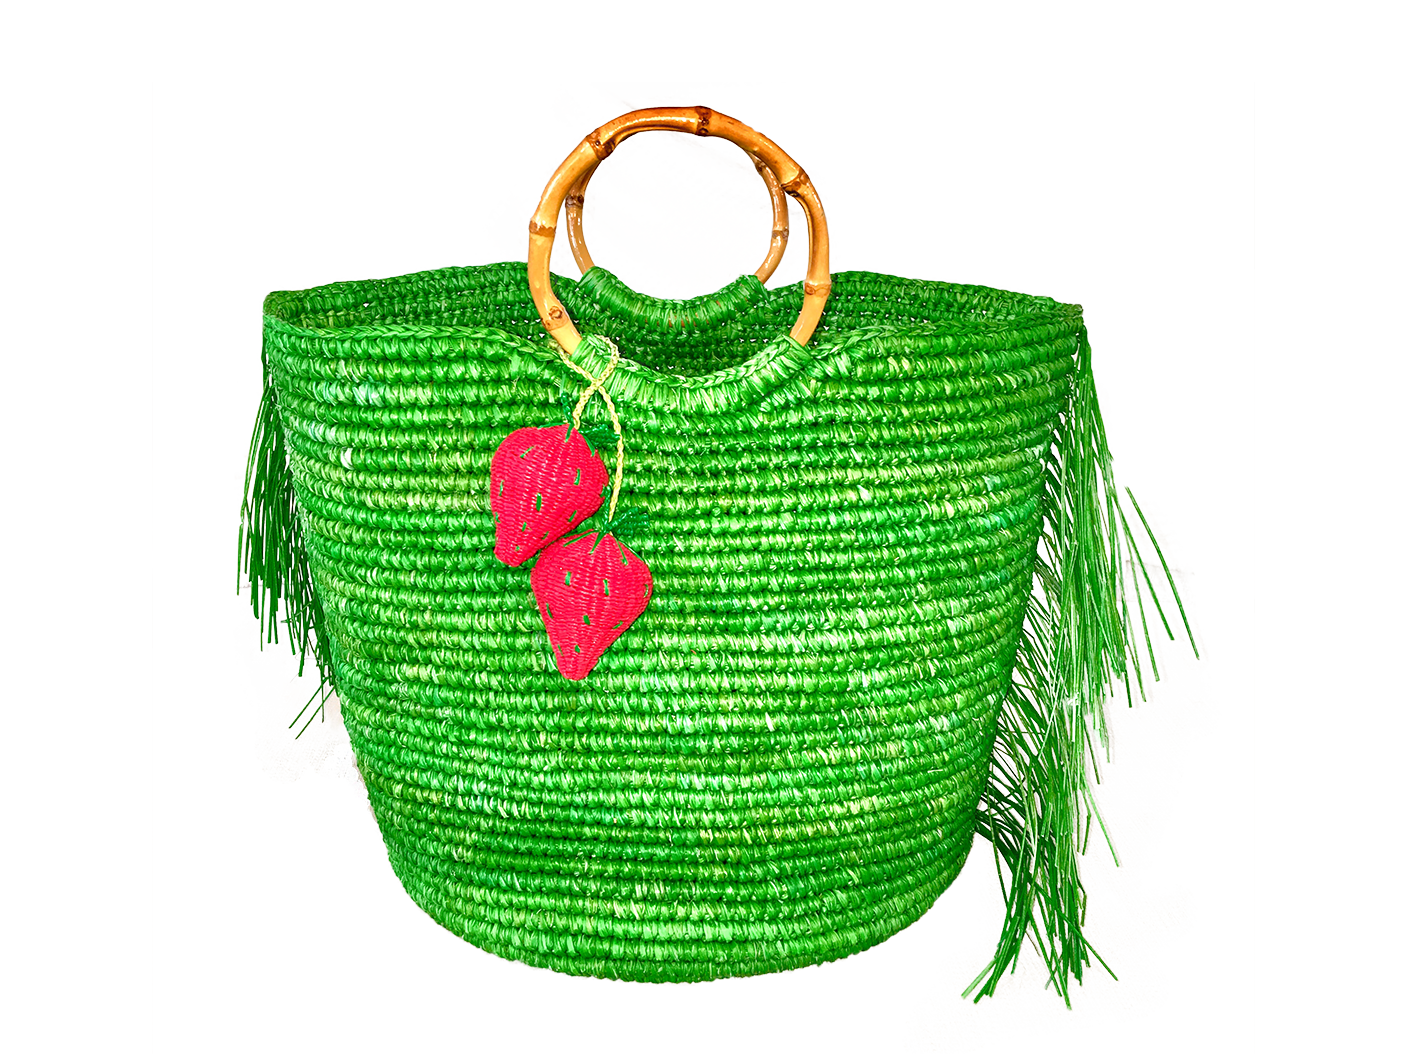 Search Results Web results Best straw bags – Basket bags trend 2019 - Harper's Bazaar Best Basket Bags To Buy Now | British Vogue hand woven straw bags beach basket green tote Straw handbags hand made in Ecuador purses brand handwoven straw bags